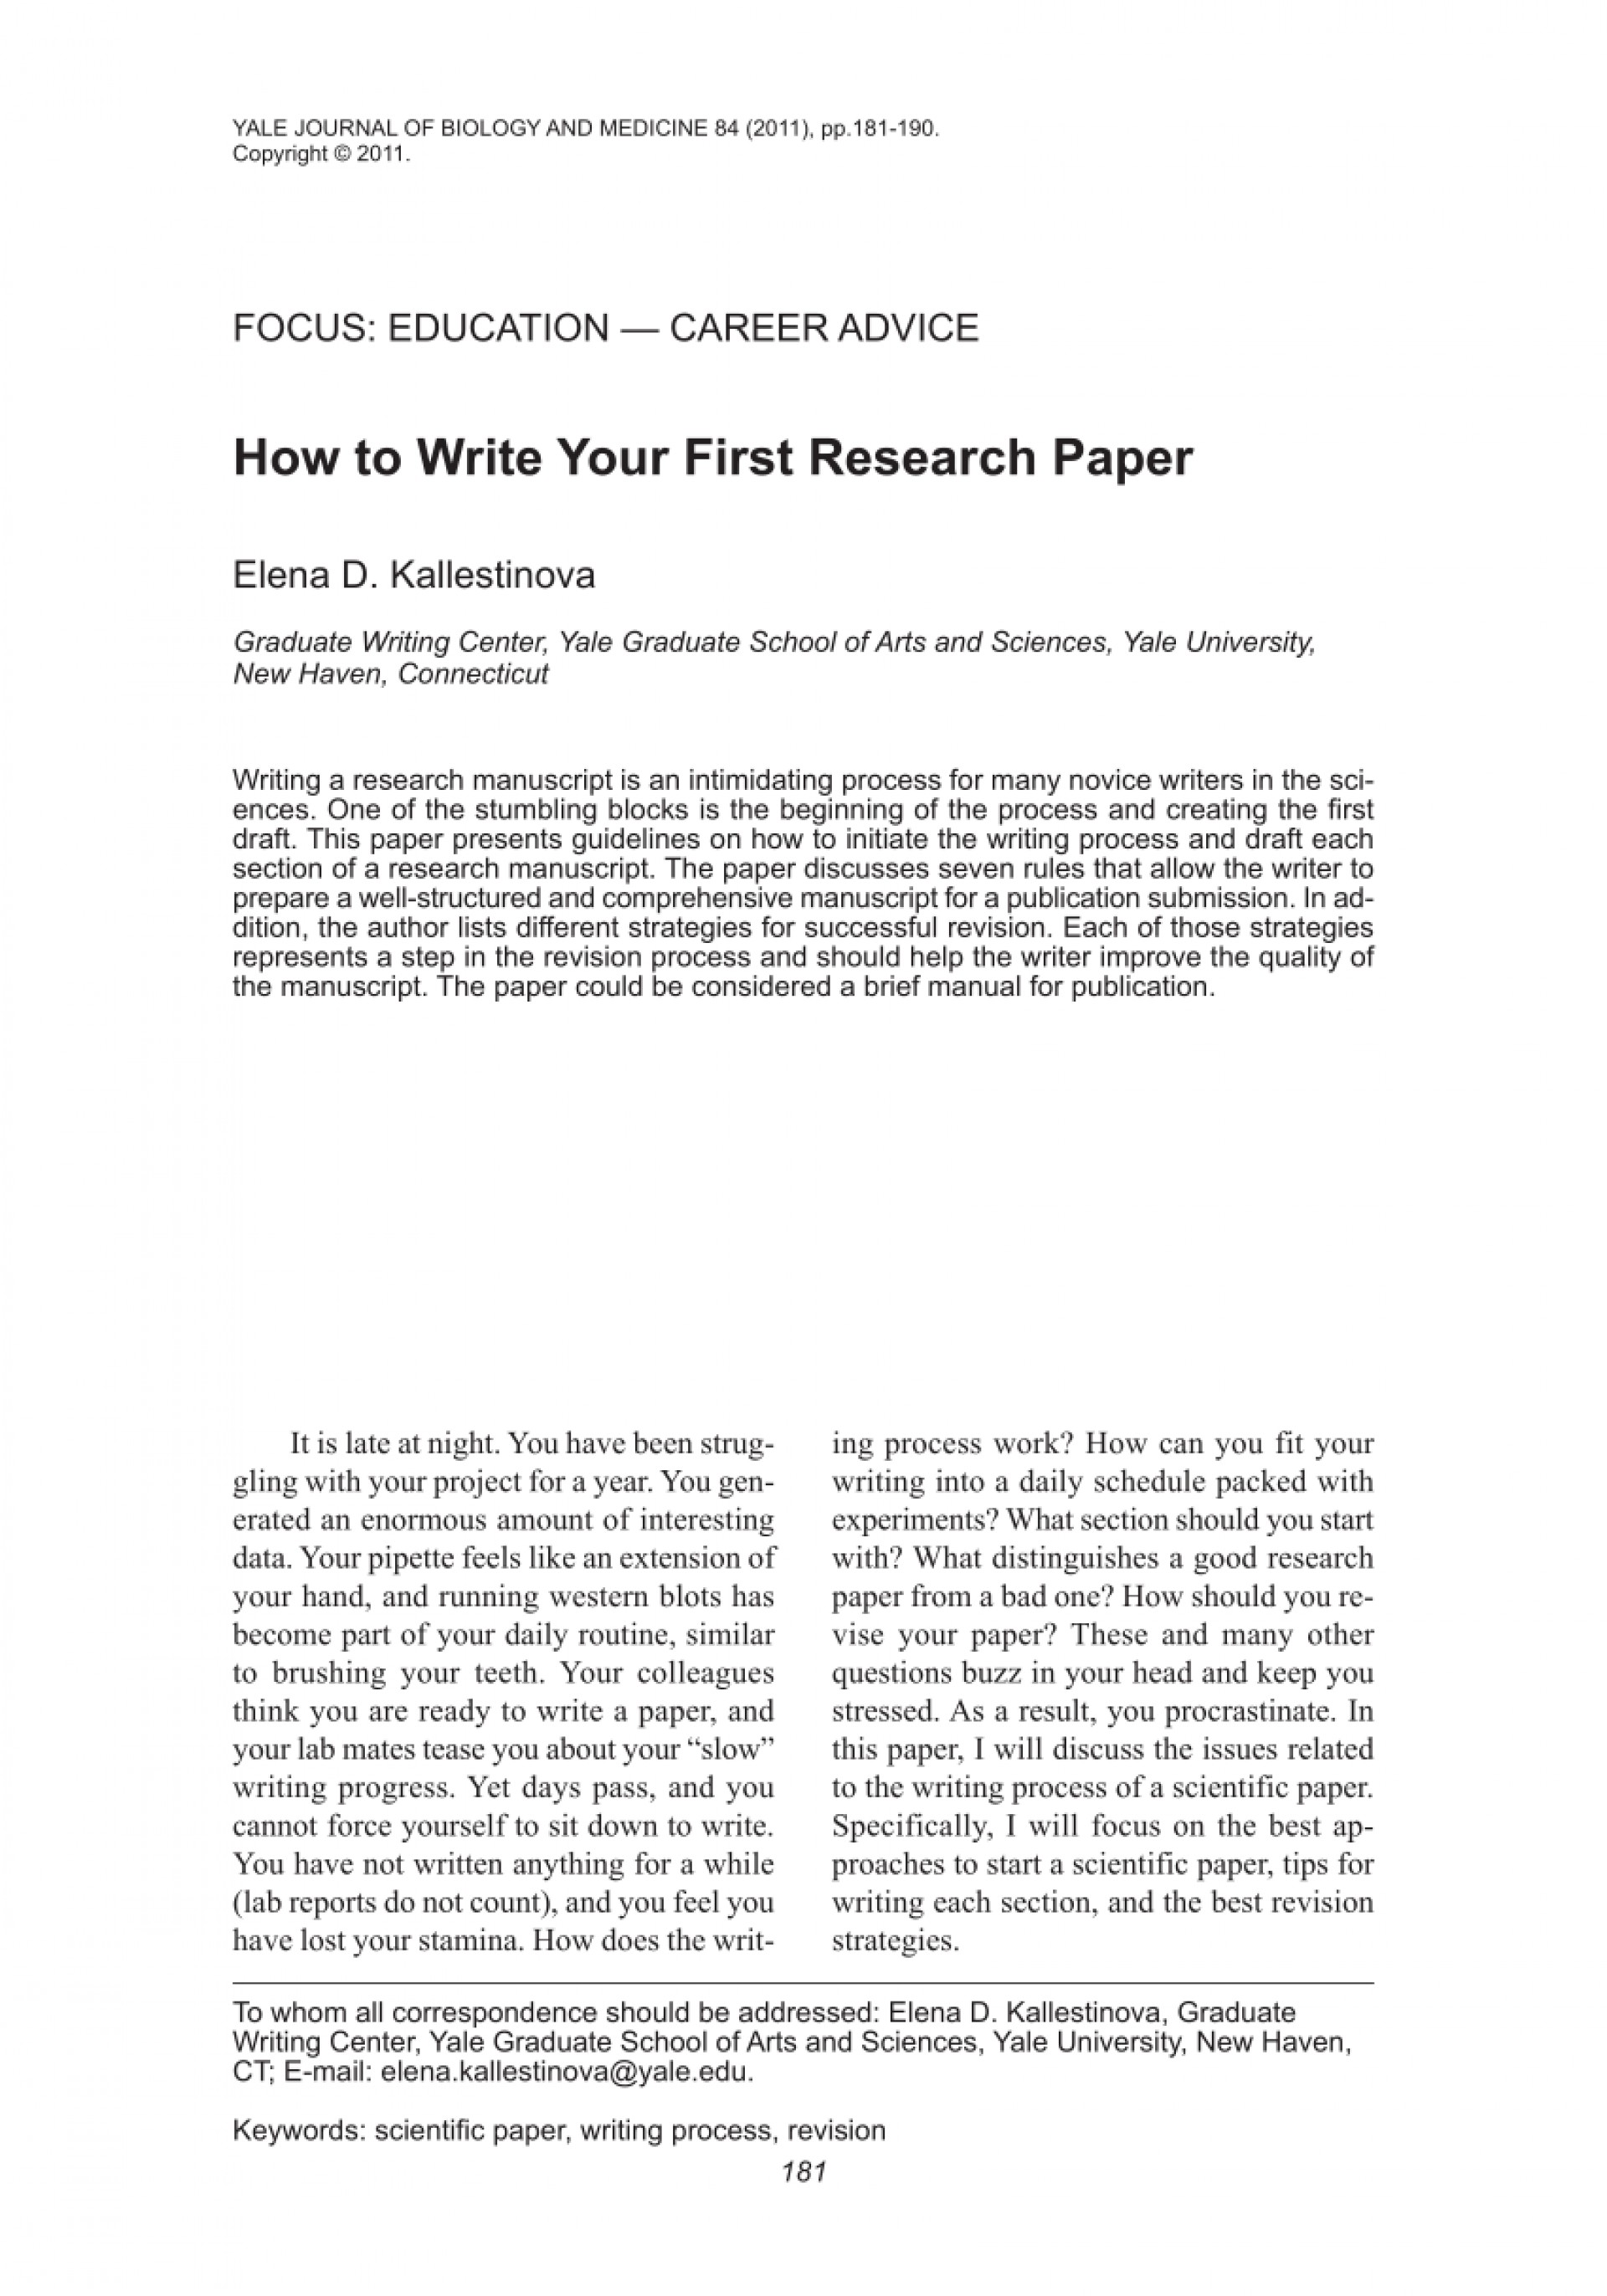 003 How To Write Research Paper Frightening Abstract For Sample Proposal A Summary Of Your 1920